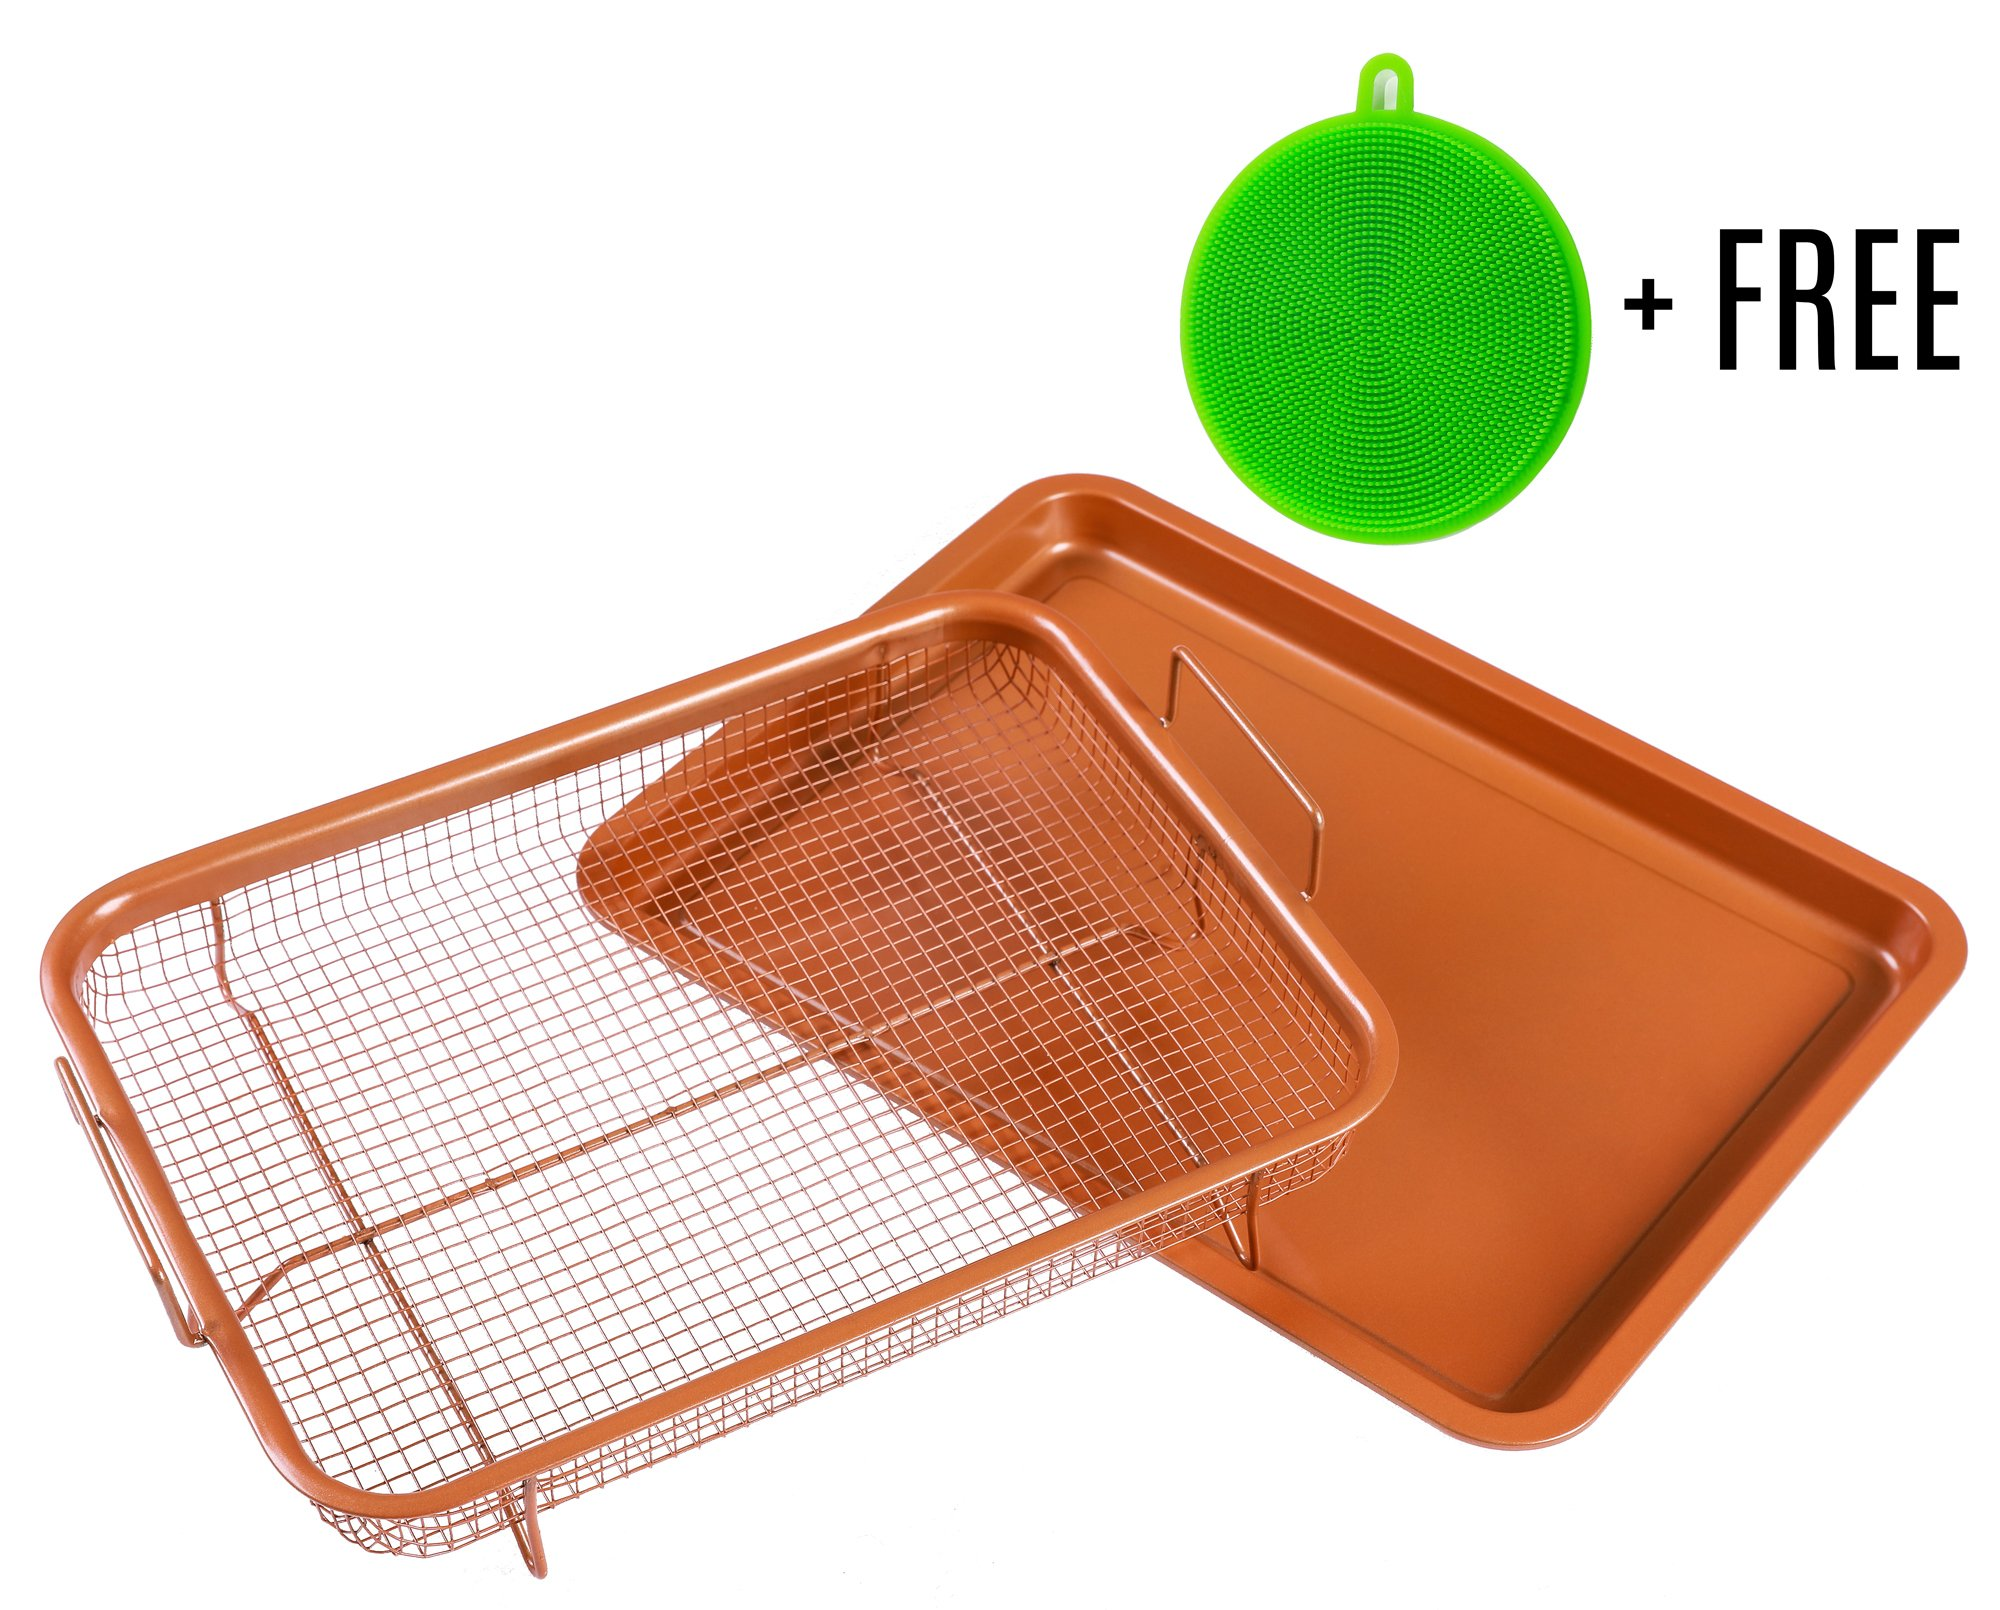 Copper Crisping Tray/Air Fryer Basket by BASICNDAILY - Chef 360° Cooking and Baking Sheet, Non-Stick Mesh Grill, Oven-Safe Square Pan + Free Silicone Dish Sponge Scrubber